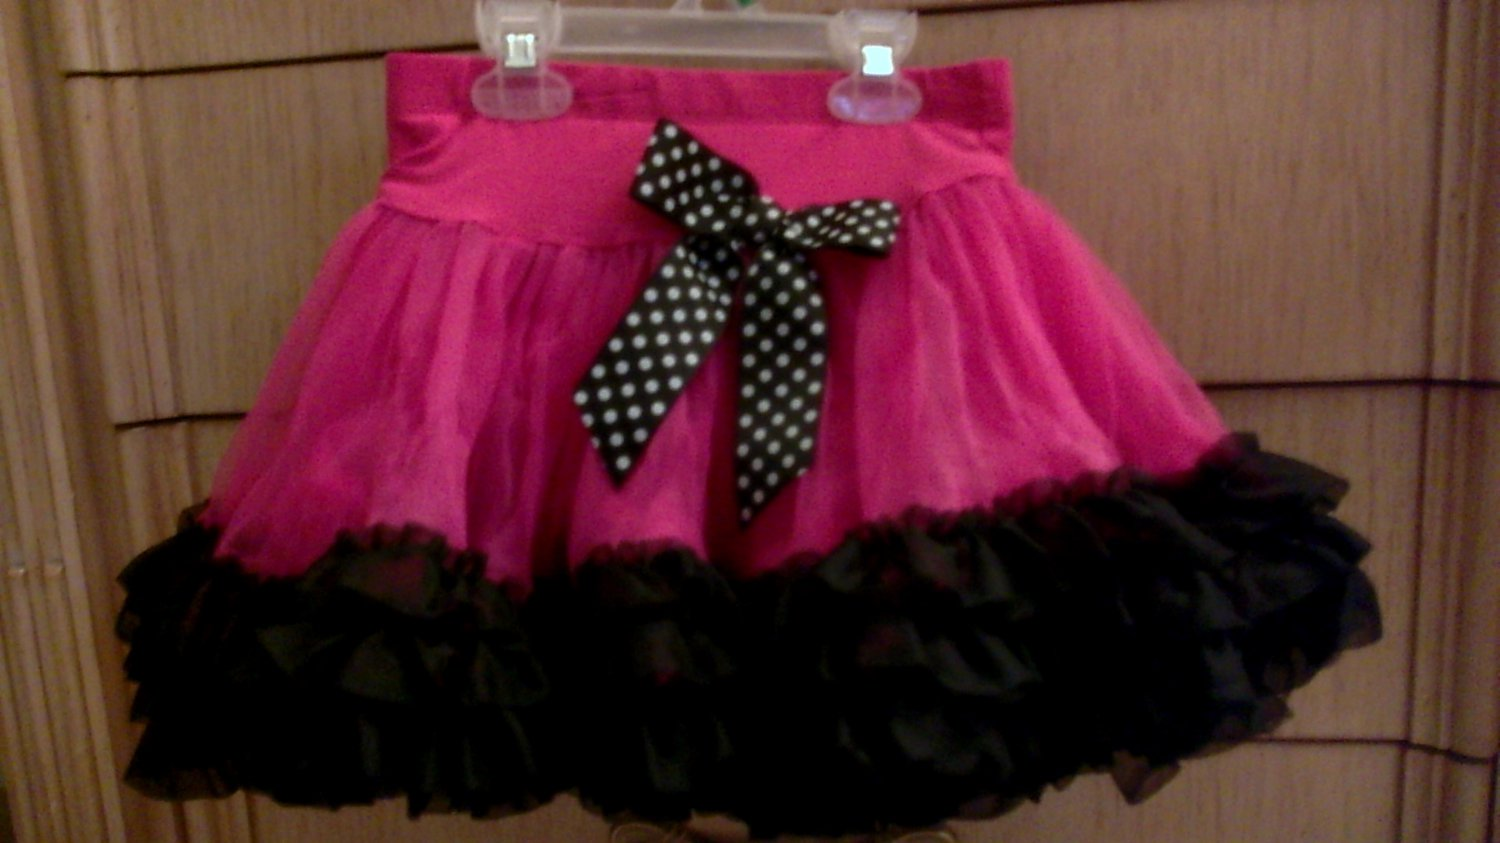 Check Out The Pro Pics From Our Hot Pink Destination: Hot Pink & Black Tutu Size 6 6x